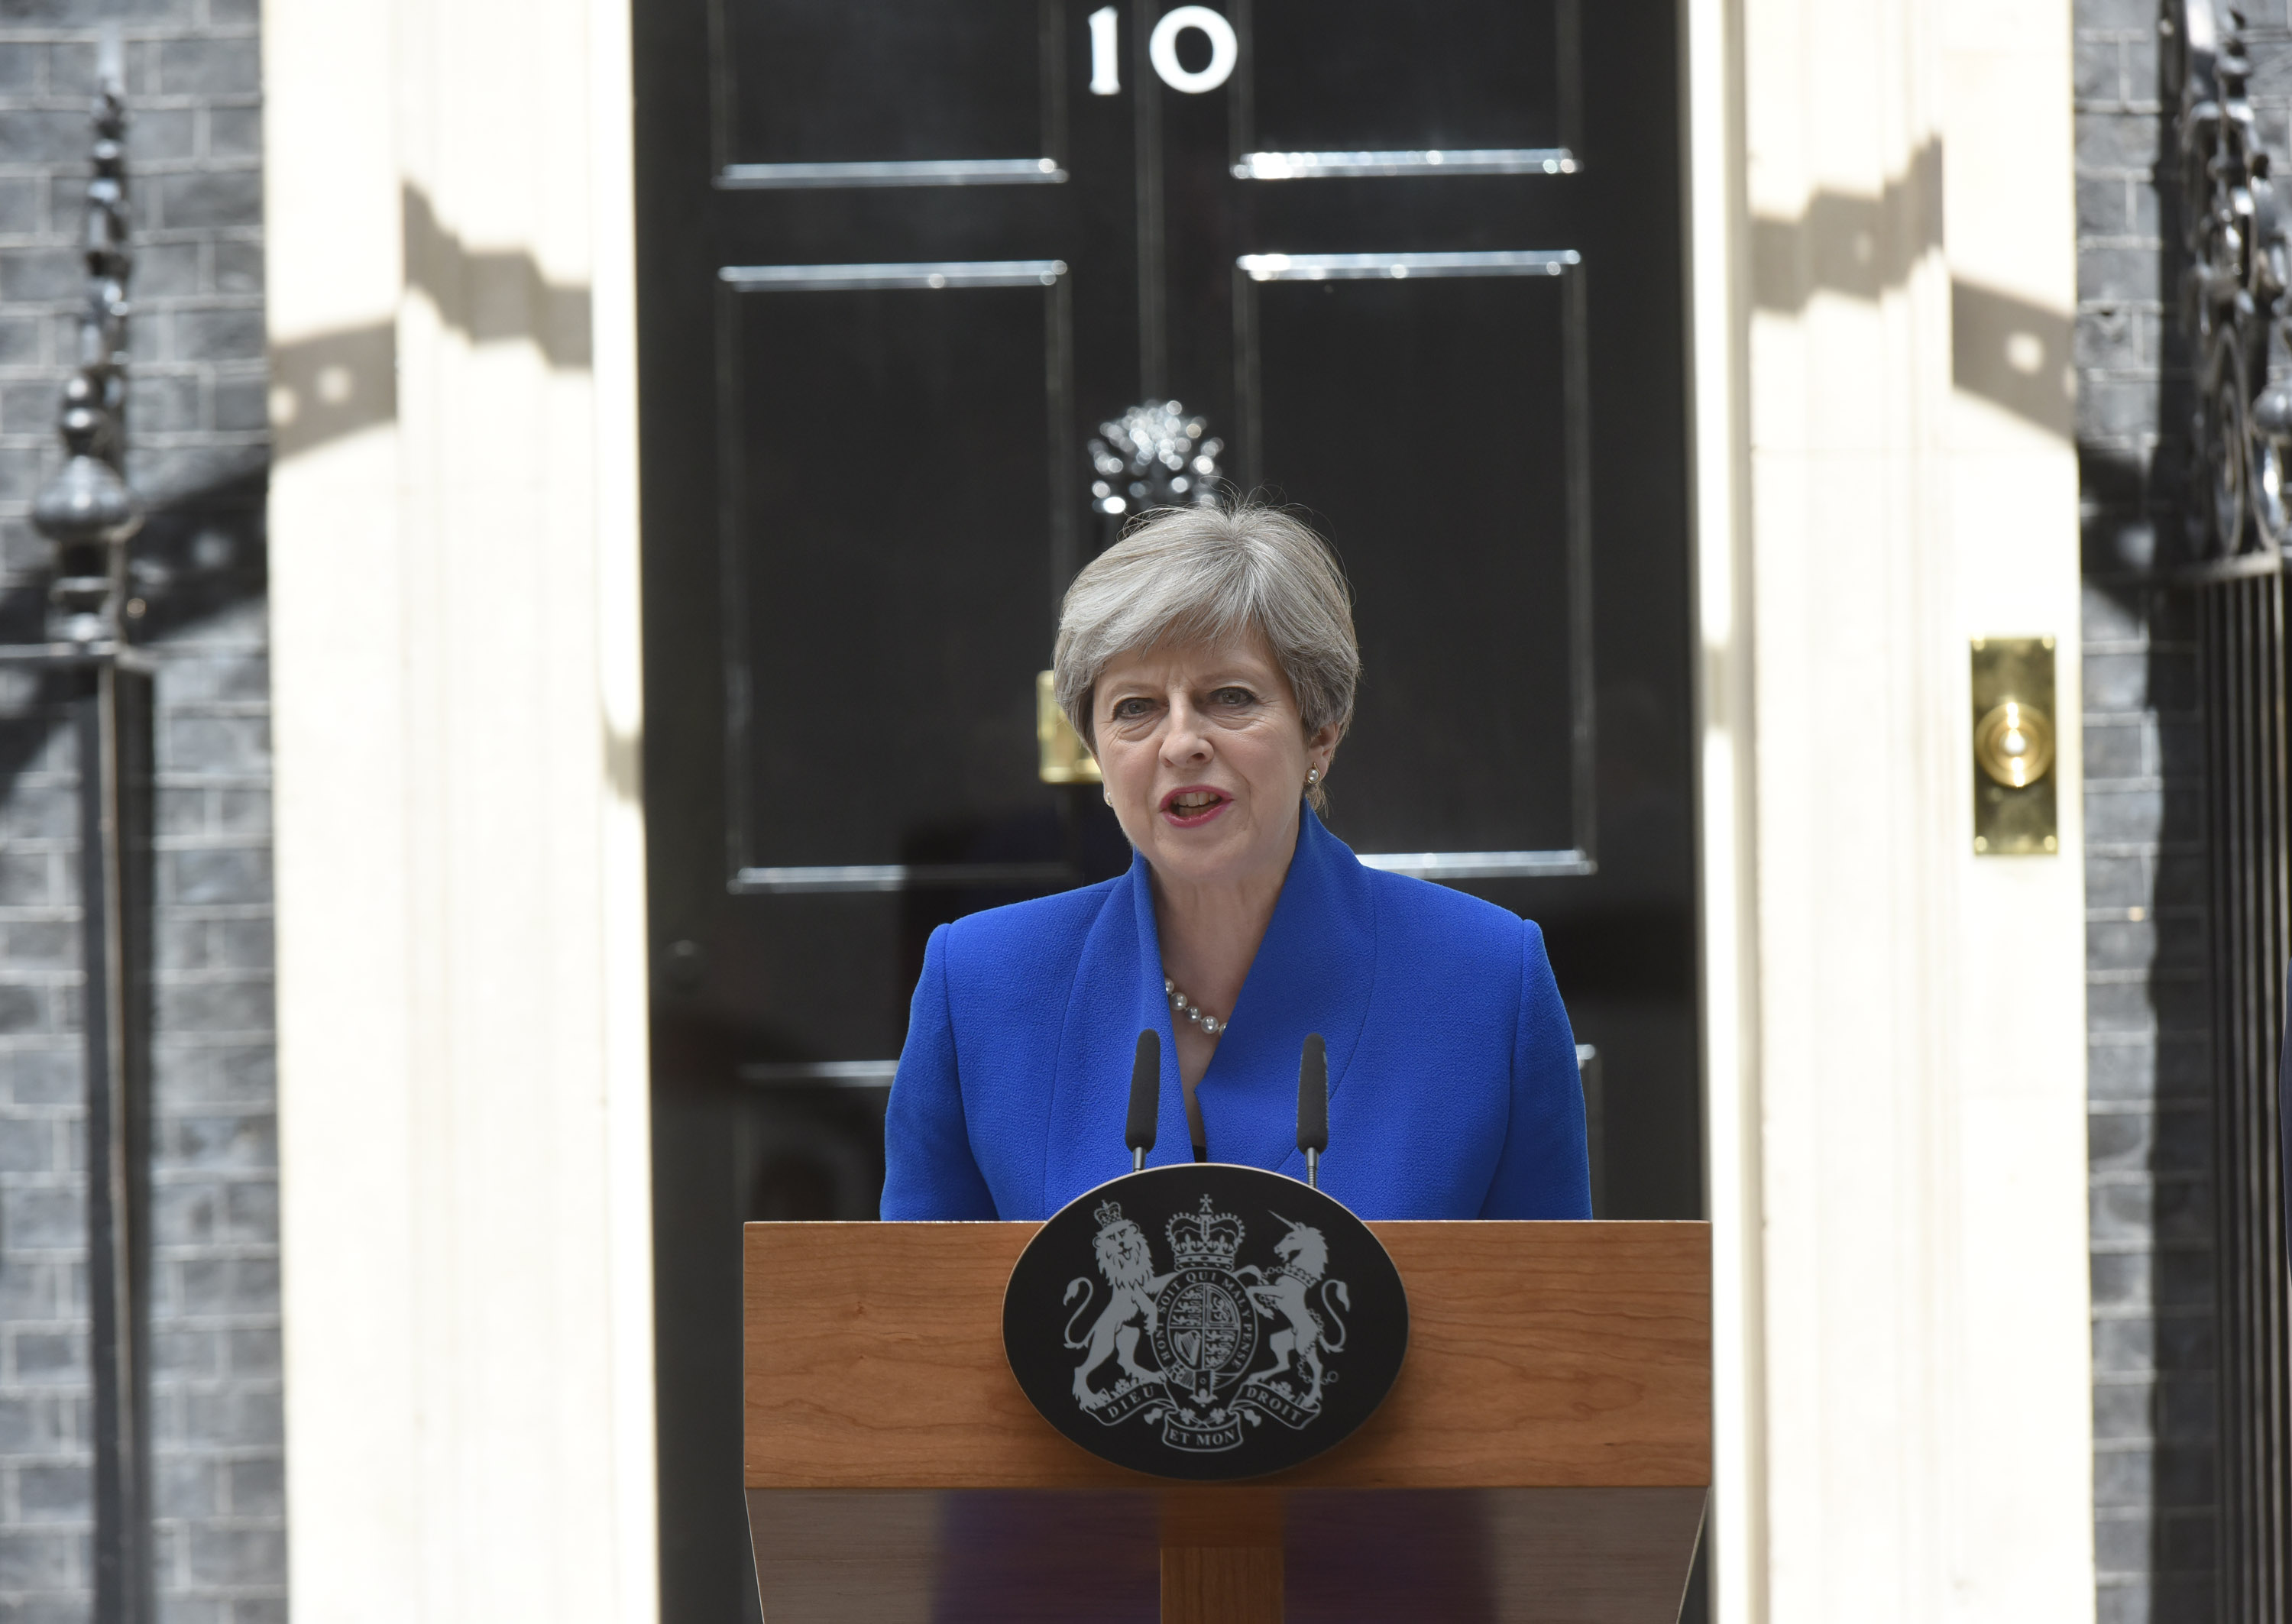 Prime Minister Theresa May outside No 10 Downing Street after the 2017 general election